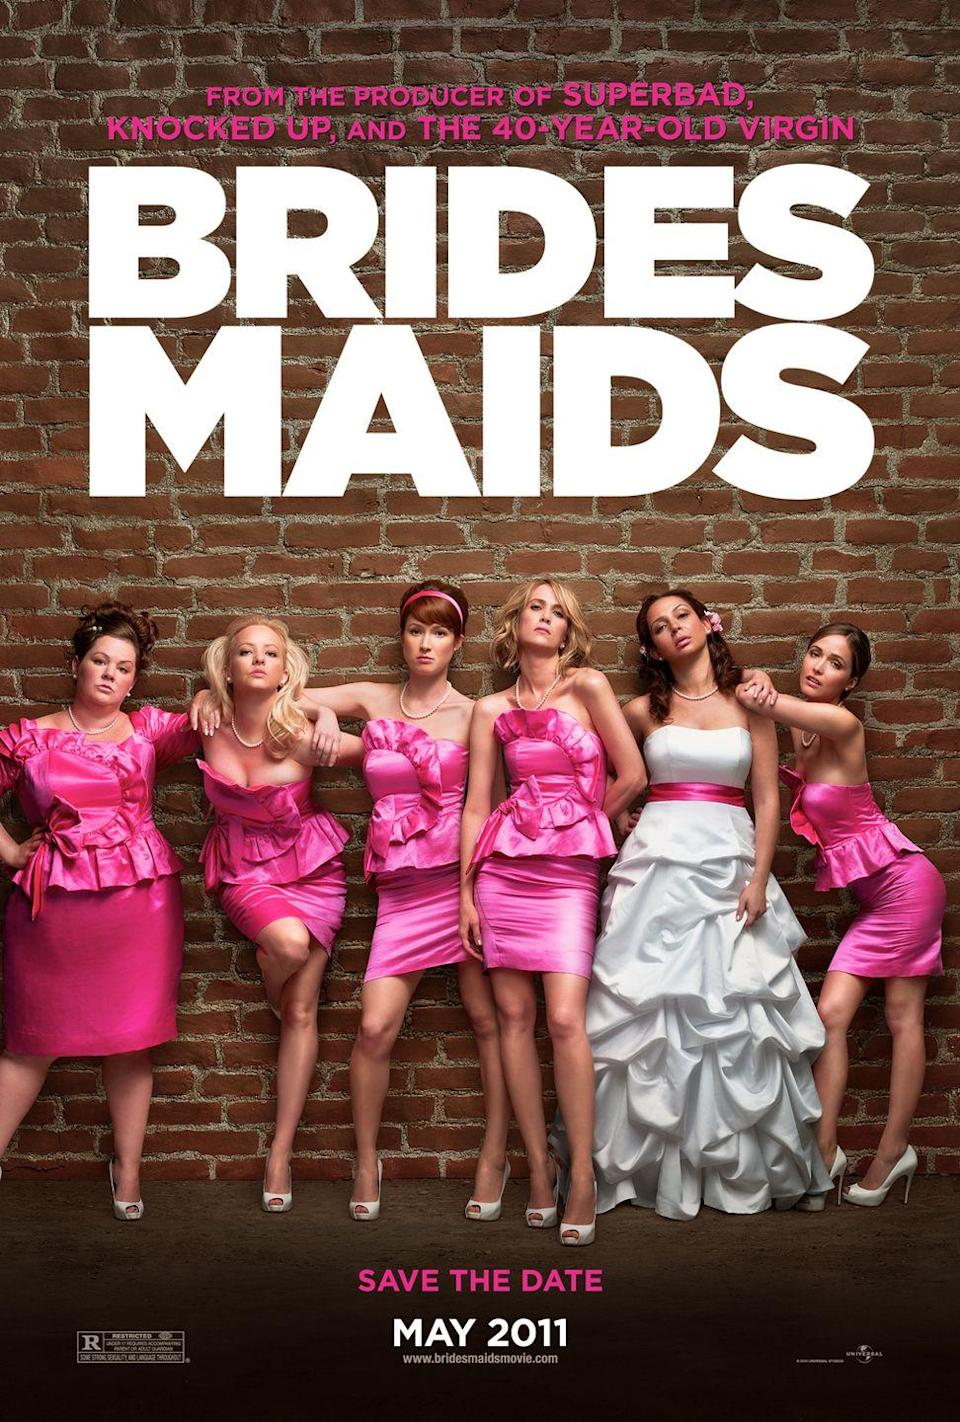 """<p><a class=""""link rapid-noclick-resp"""" href=""""https://www.amazon.com/Bridesmaids-Kristen-Wiig/dp/B005KL3QZ0/?tag=syn-yahoo-20&ascsubtag=%5Bartid%7C10070.g.33373092%5Bsrc%7Cyahoo-us"""" rel=""""nofollow noopener"""" target=""""_blank"""" data-ylk=""""slk:WATCH NOW"""">WATCH NOW</a></p><p>In 2011, <em>Bridesmaids</em> proved what most of the world already knew: that women can act in hilariously goofy buddy comedies just as well as men can. The movie took over the summer of 2011, making Melissa McCarthy a comedy star with its raunchy scenes and ridiculous wedding planning drama. This one is definitely worth a rewatch when you need some belly laughs. </p>"""